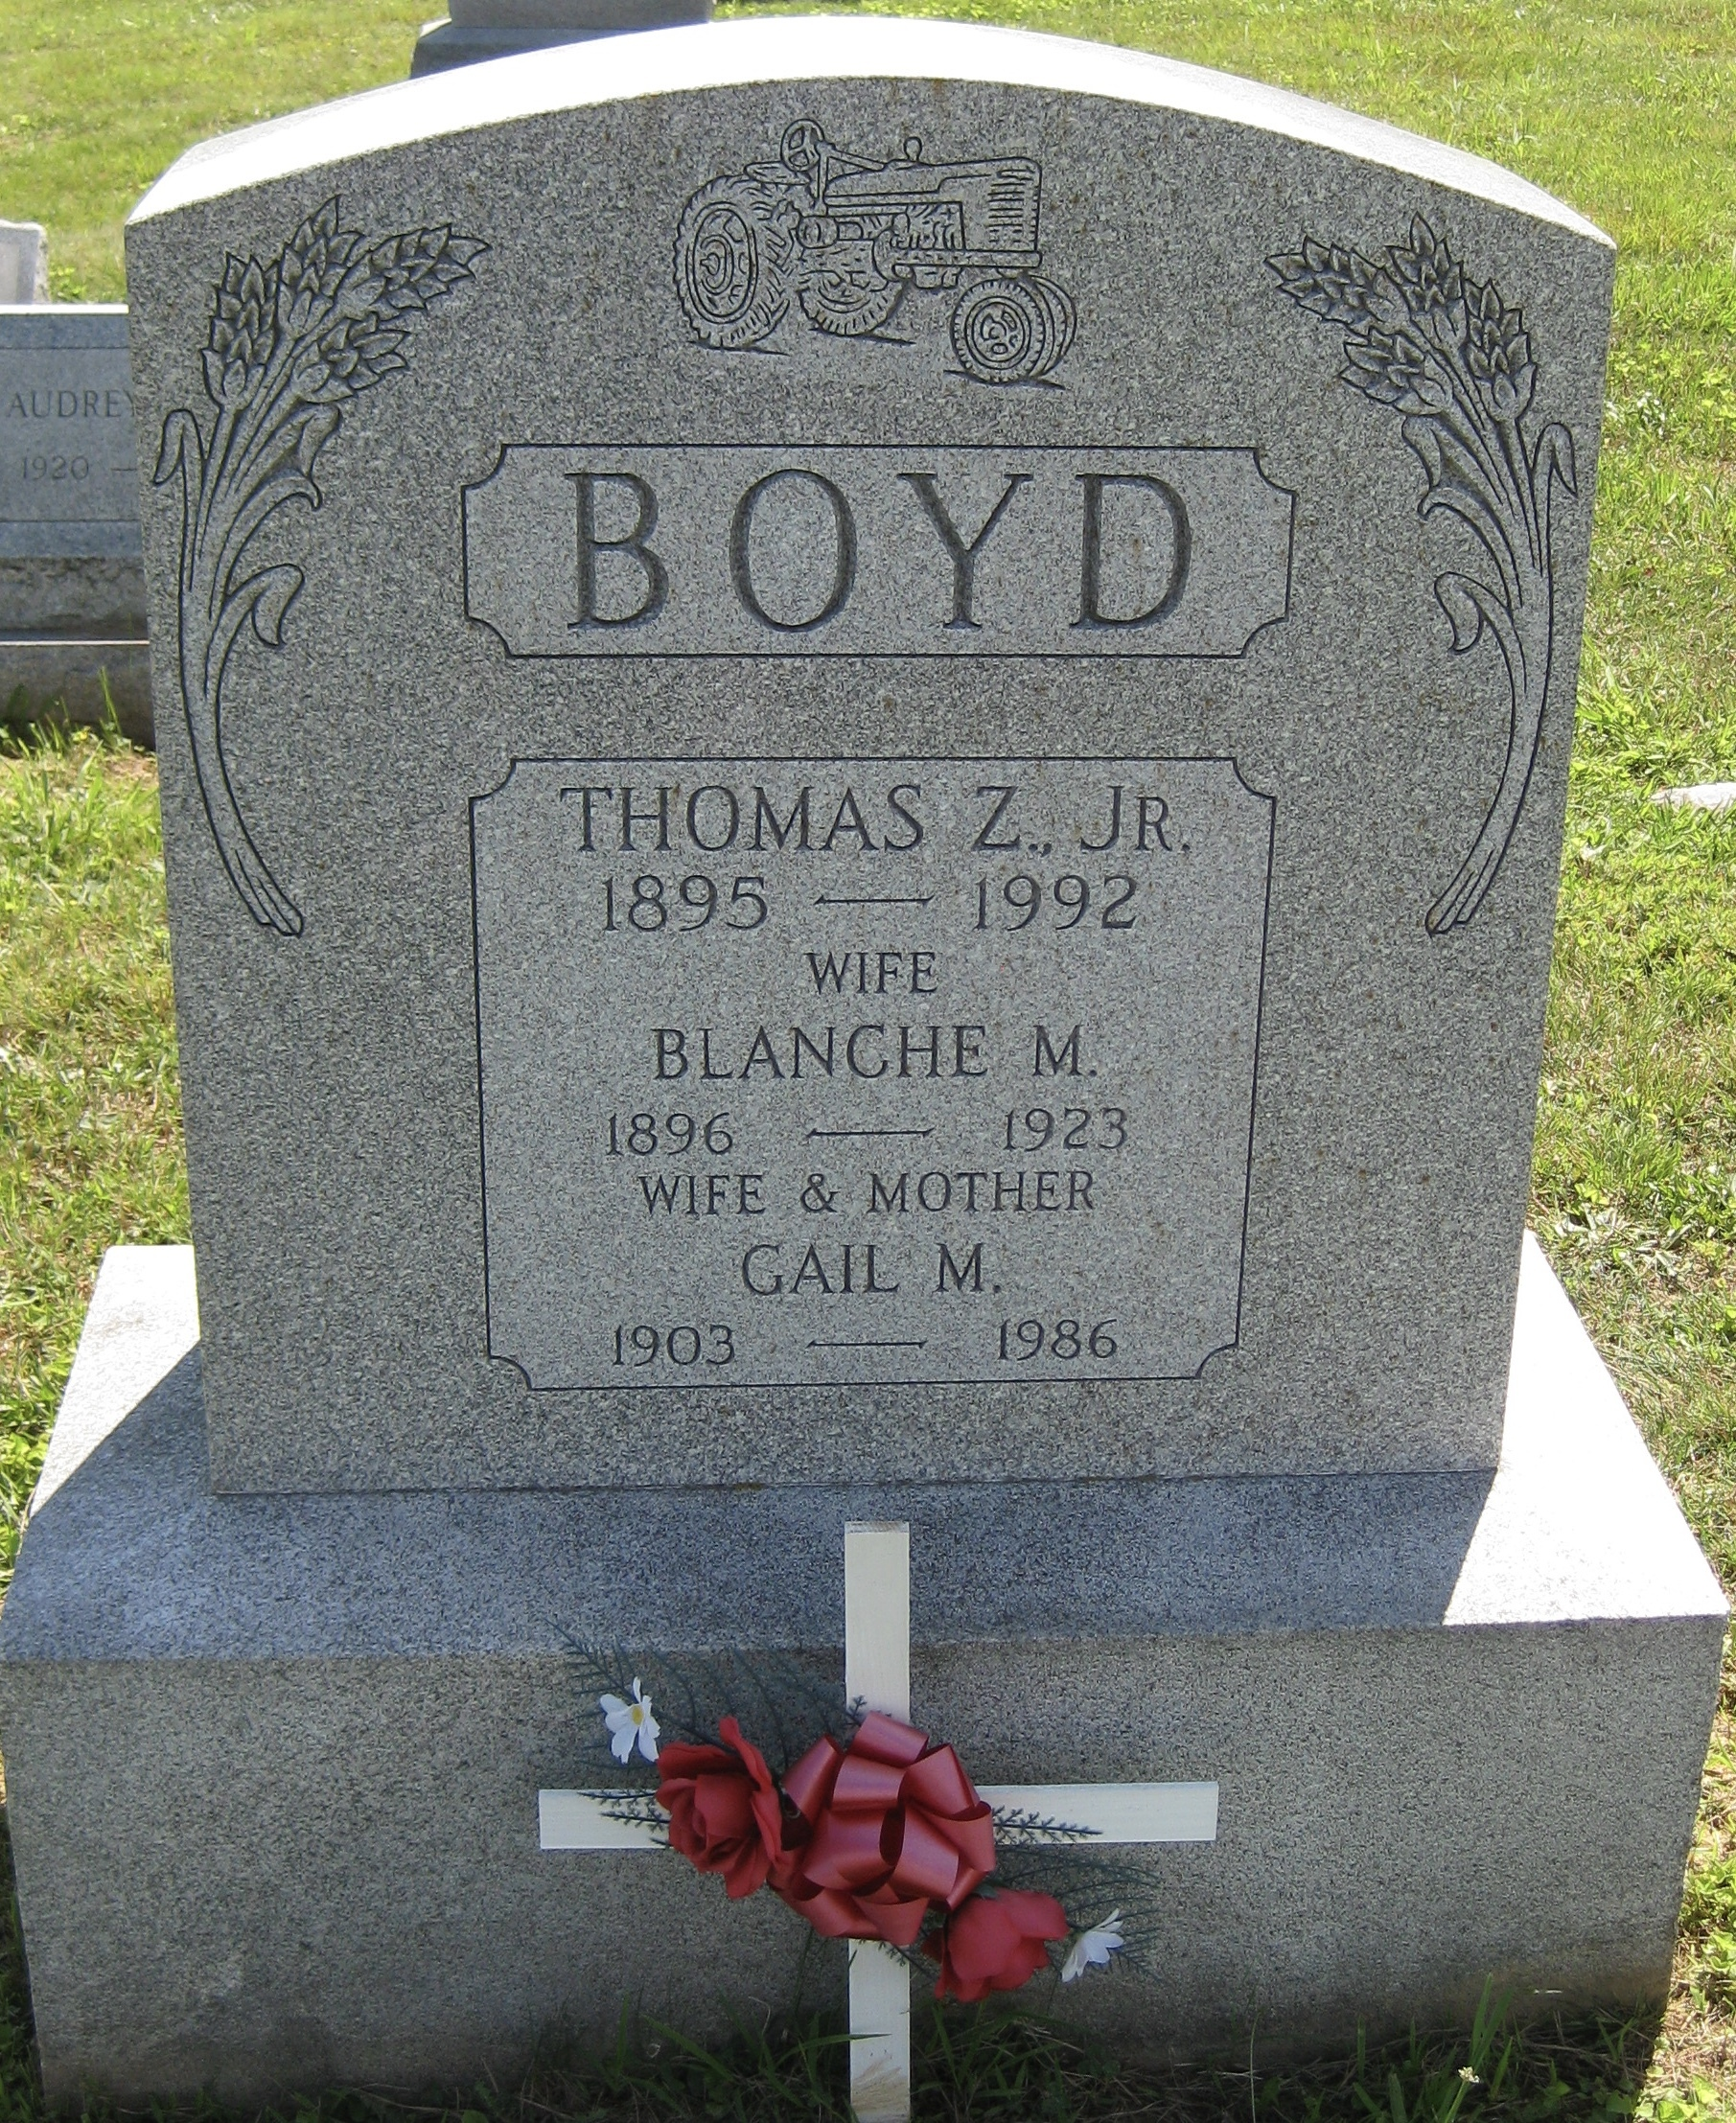 Thomas Zenith Boyd, Jr